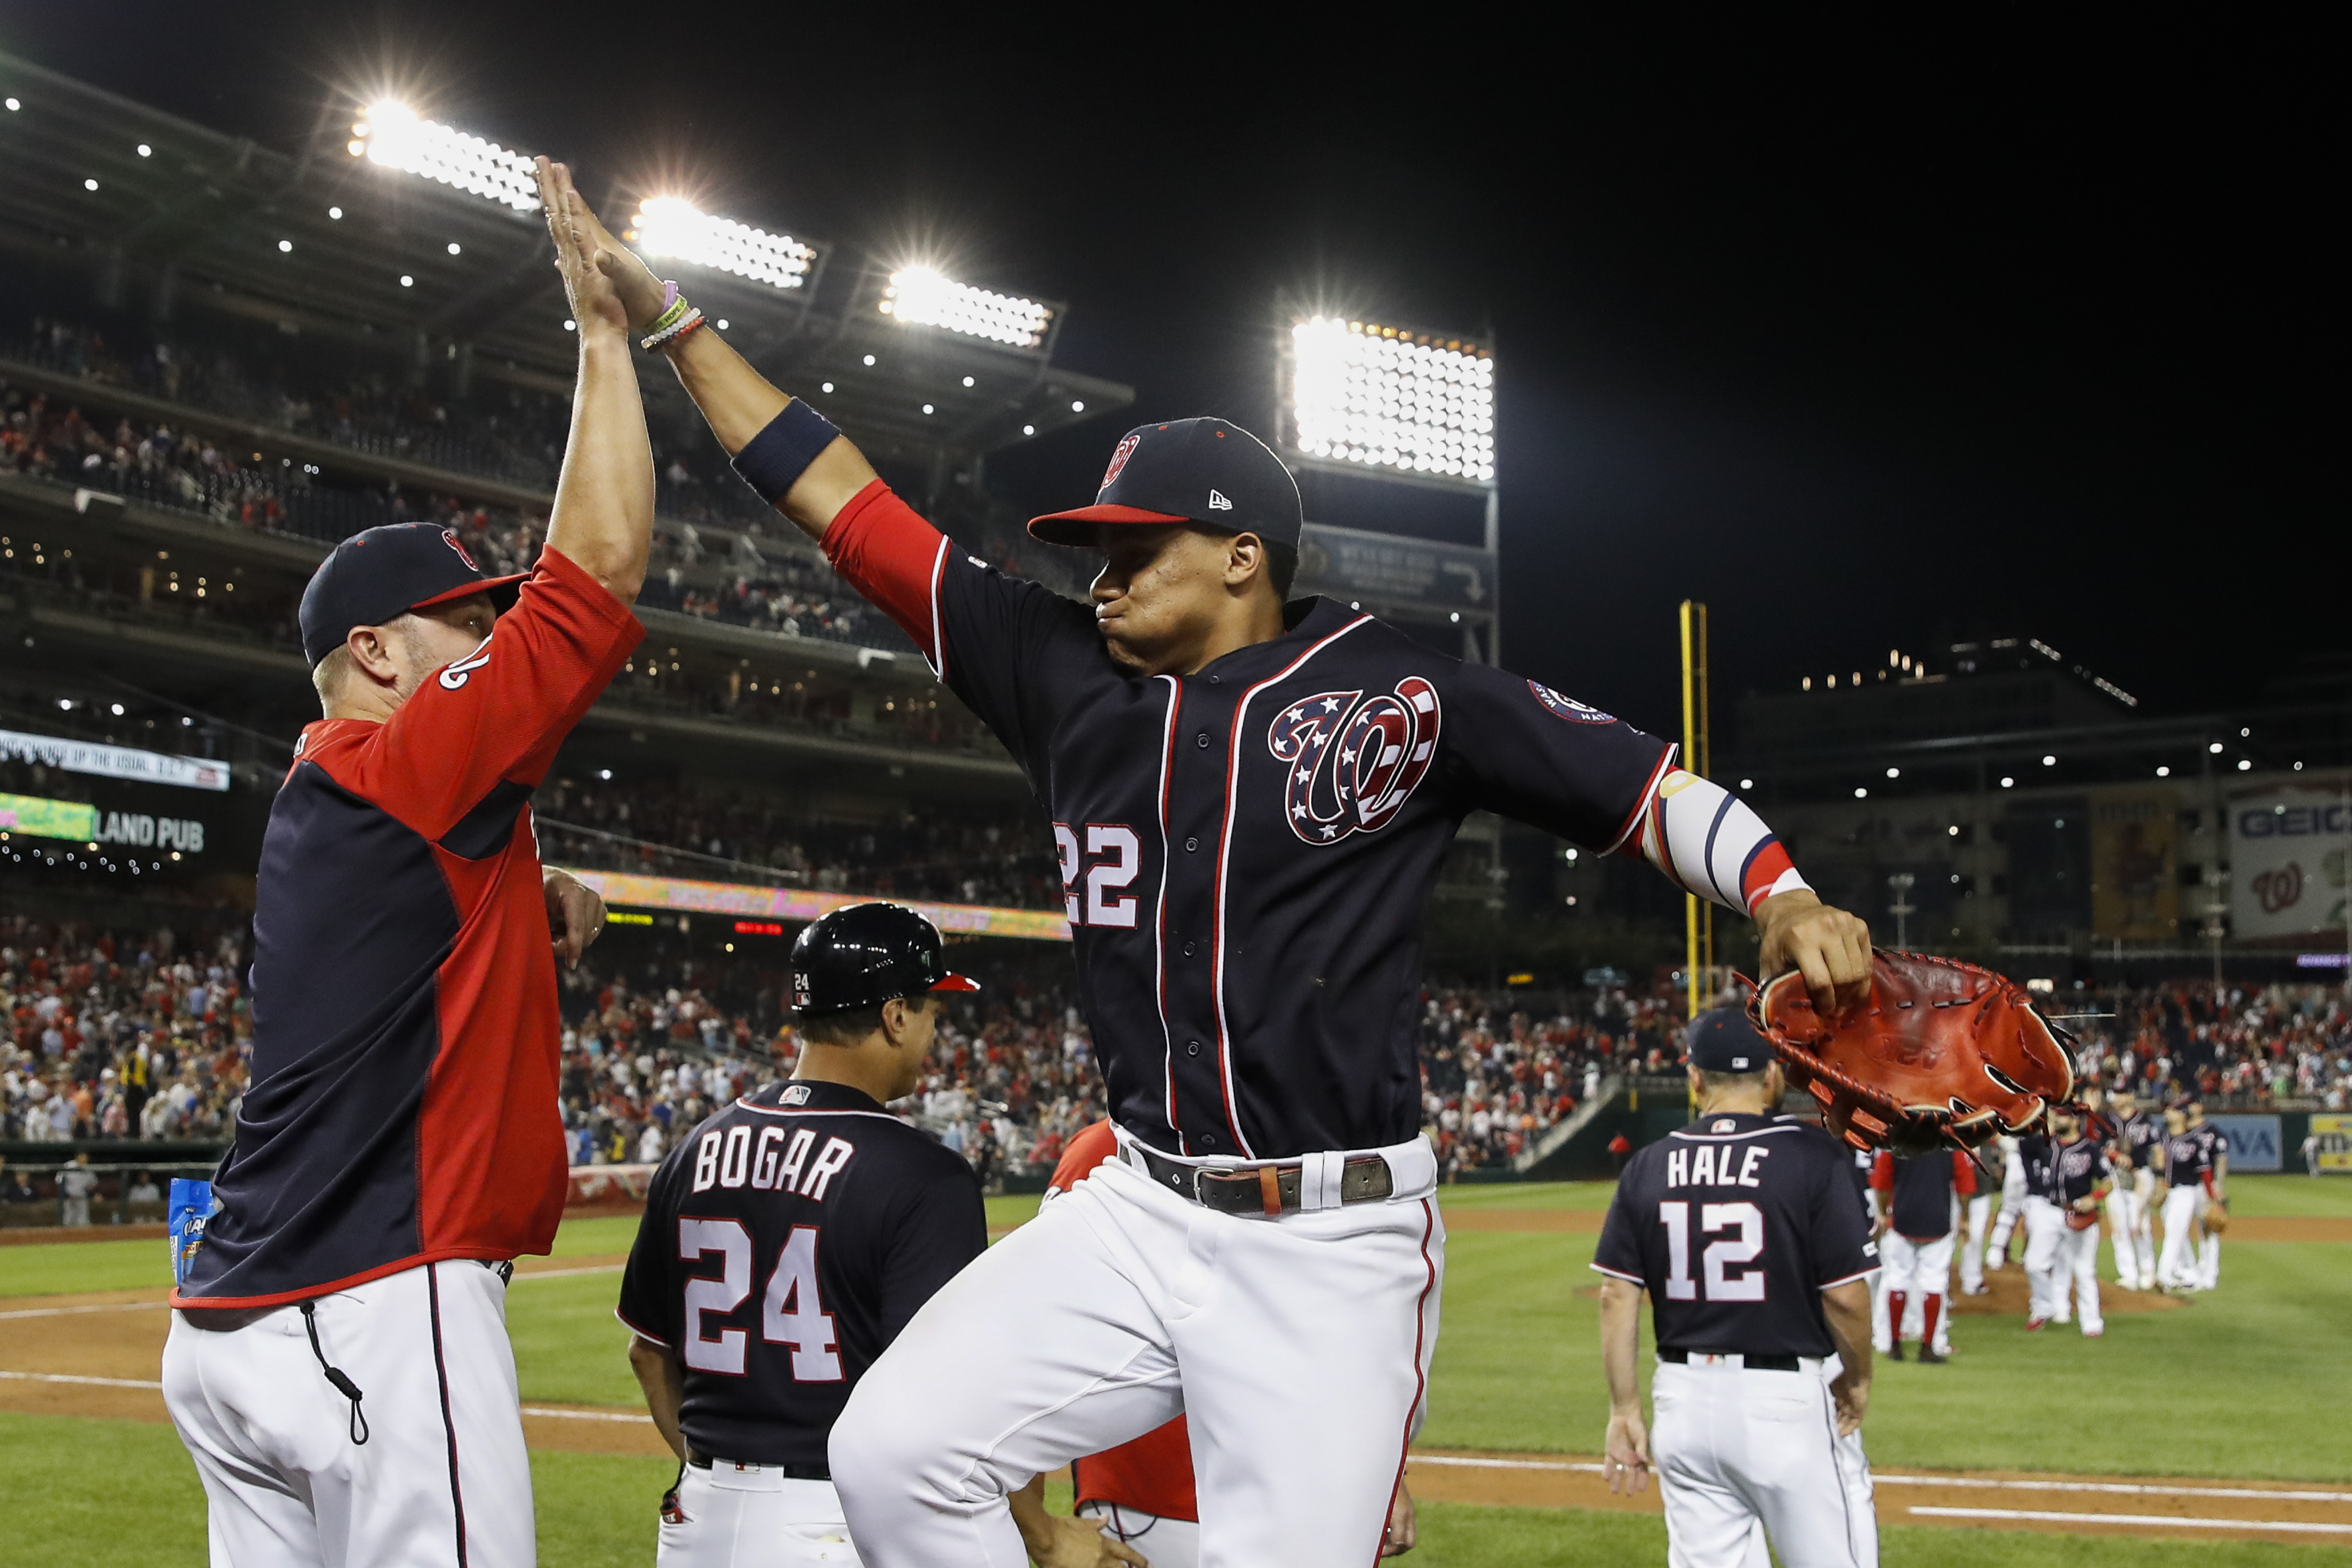 Washington Nationals' possible playoff picture - The